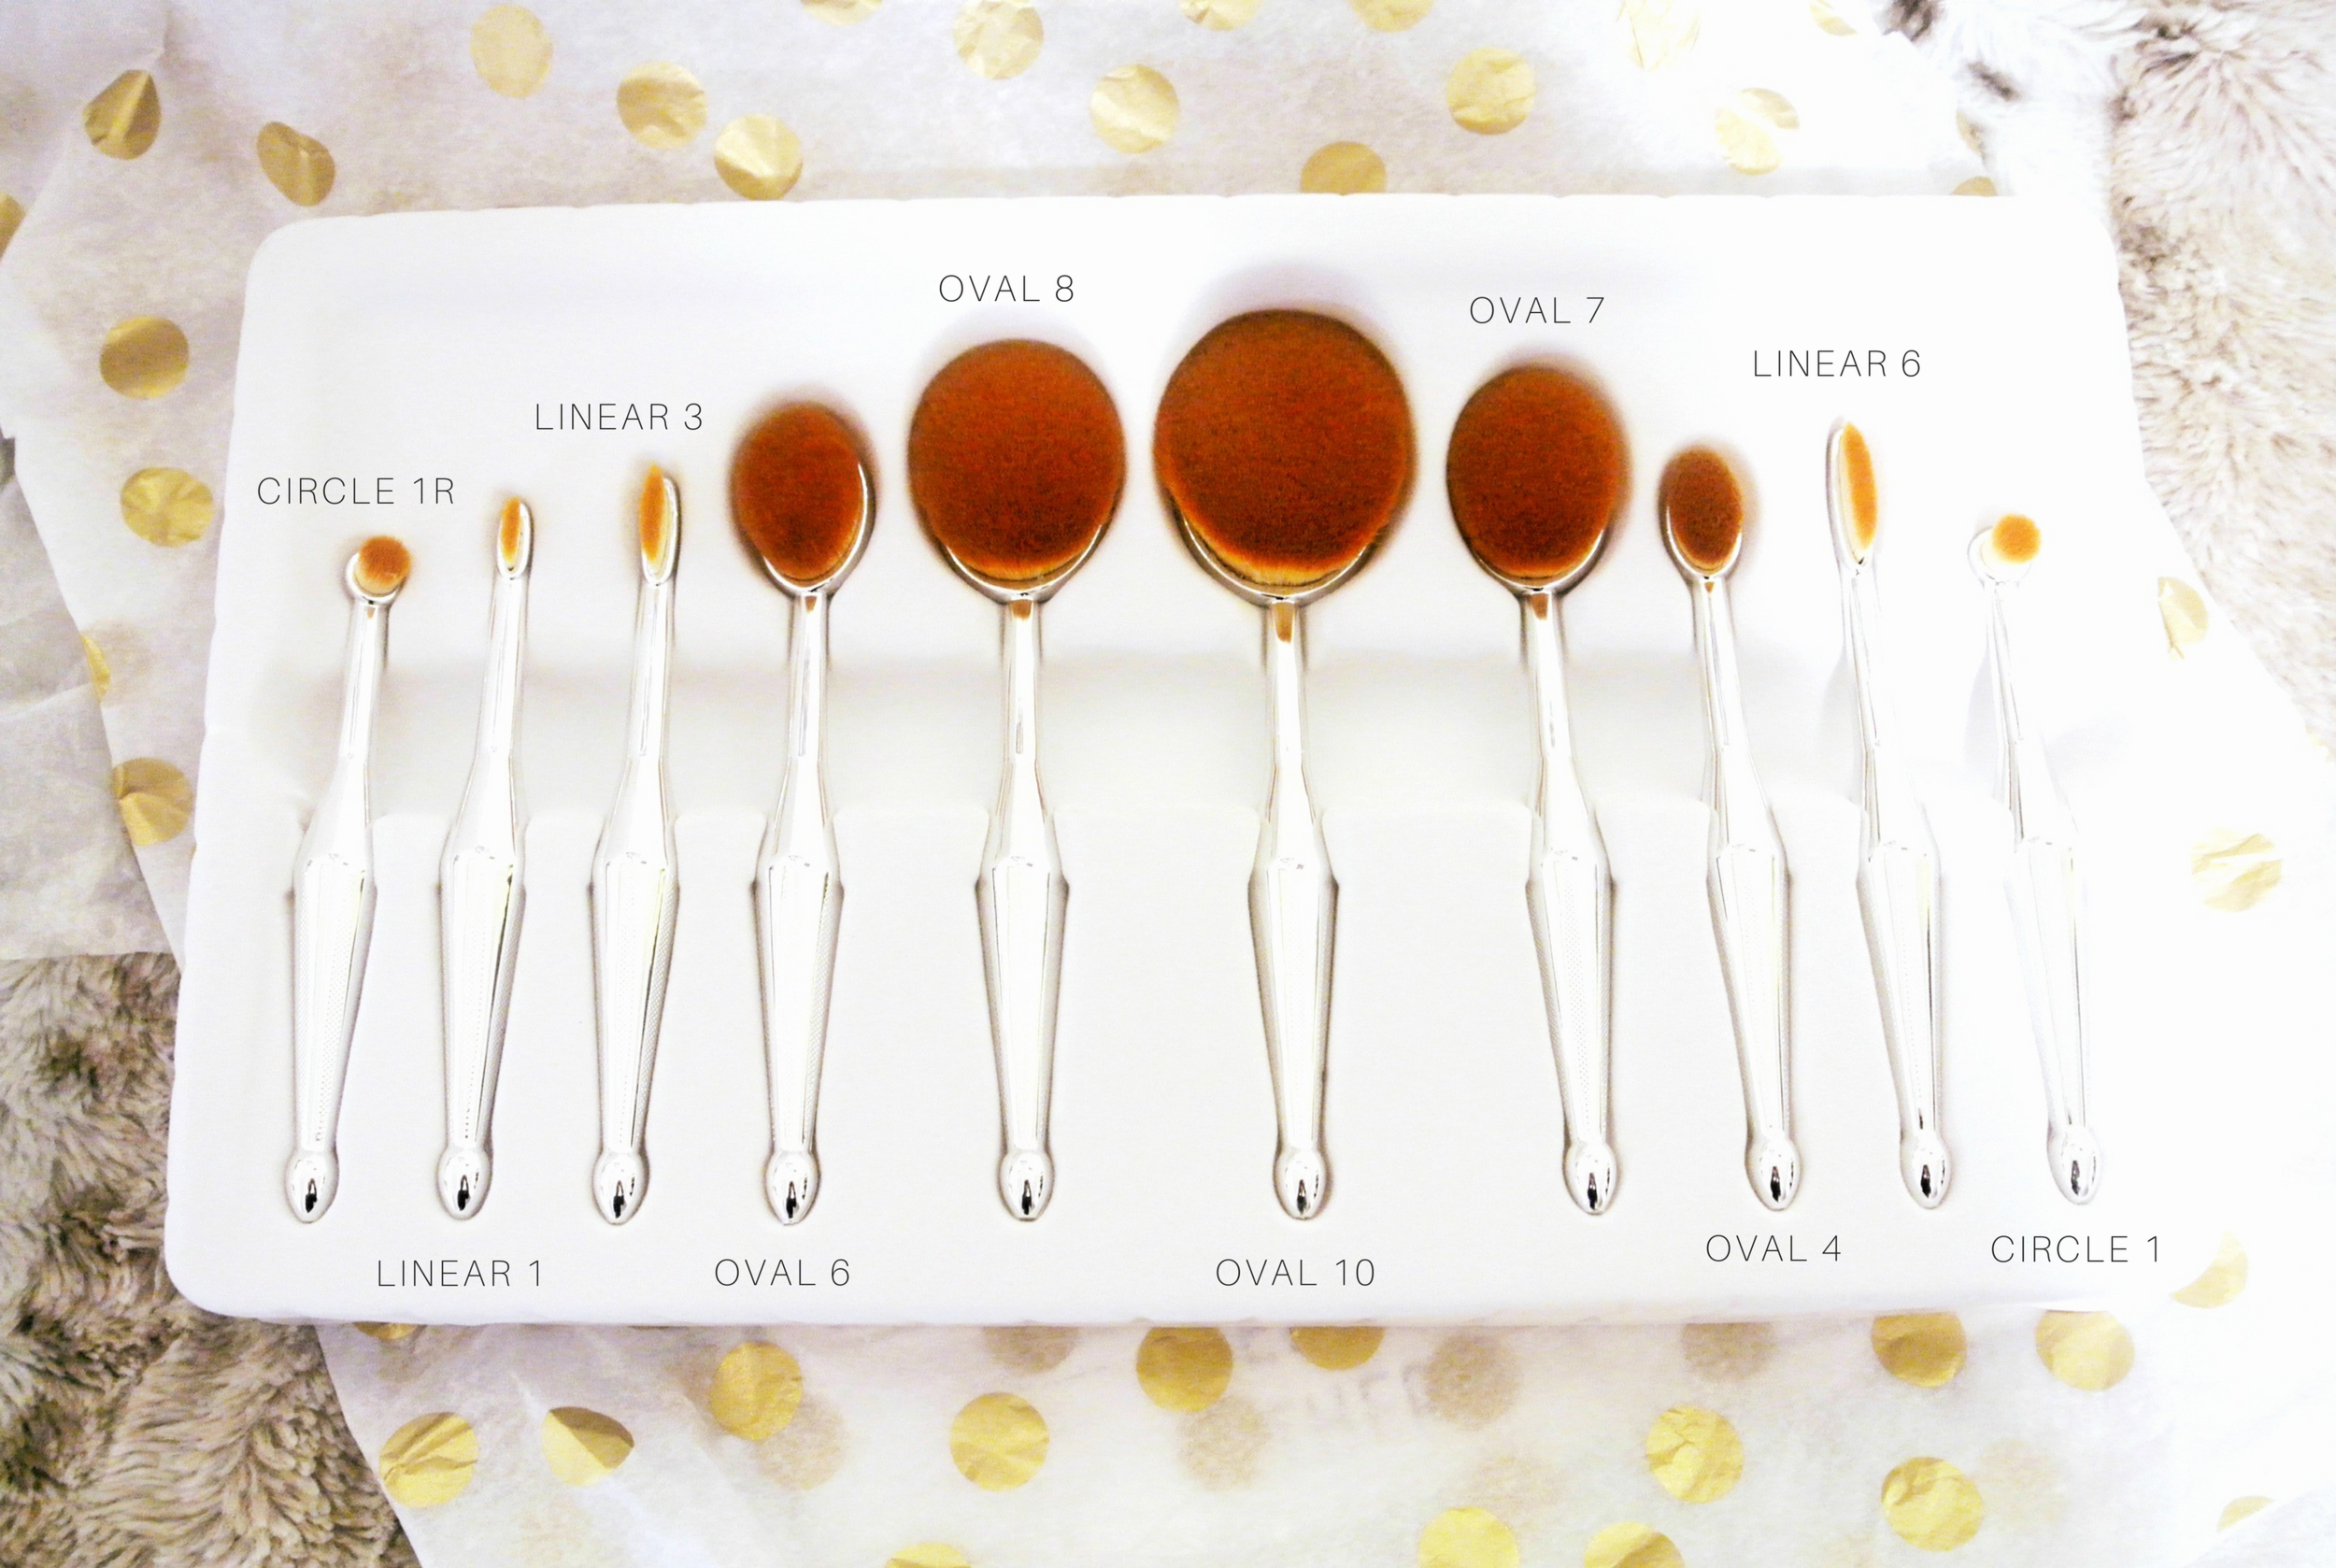 Oval Makeup Brushes w. Names | ebbony&lune